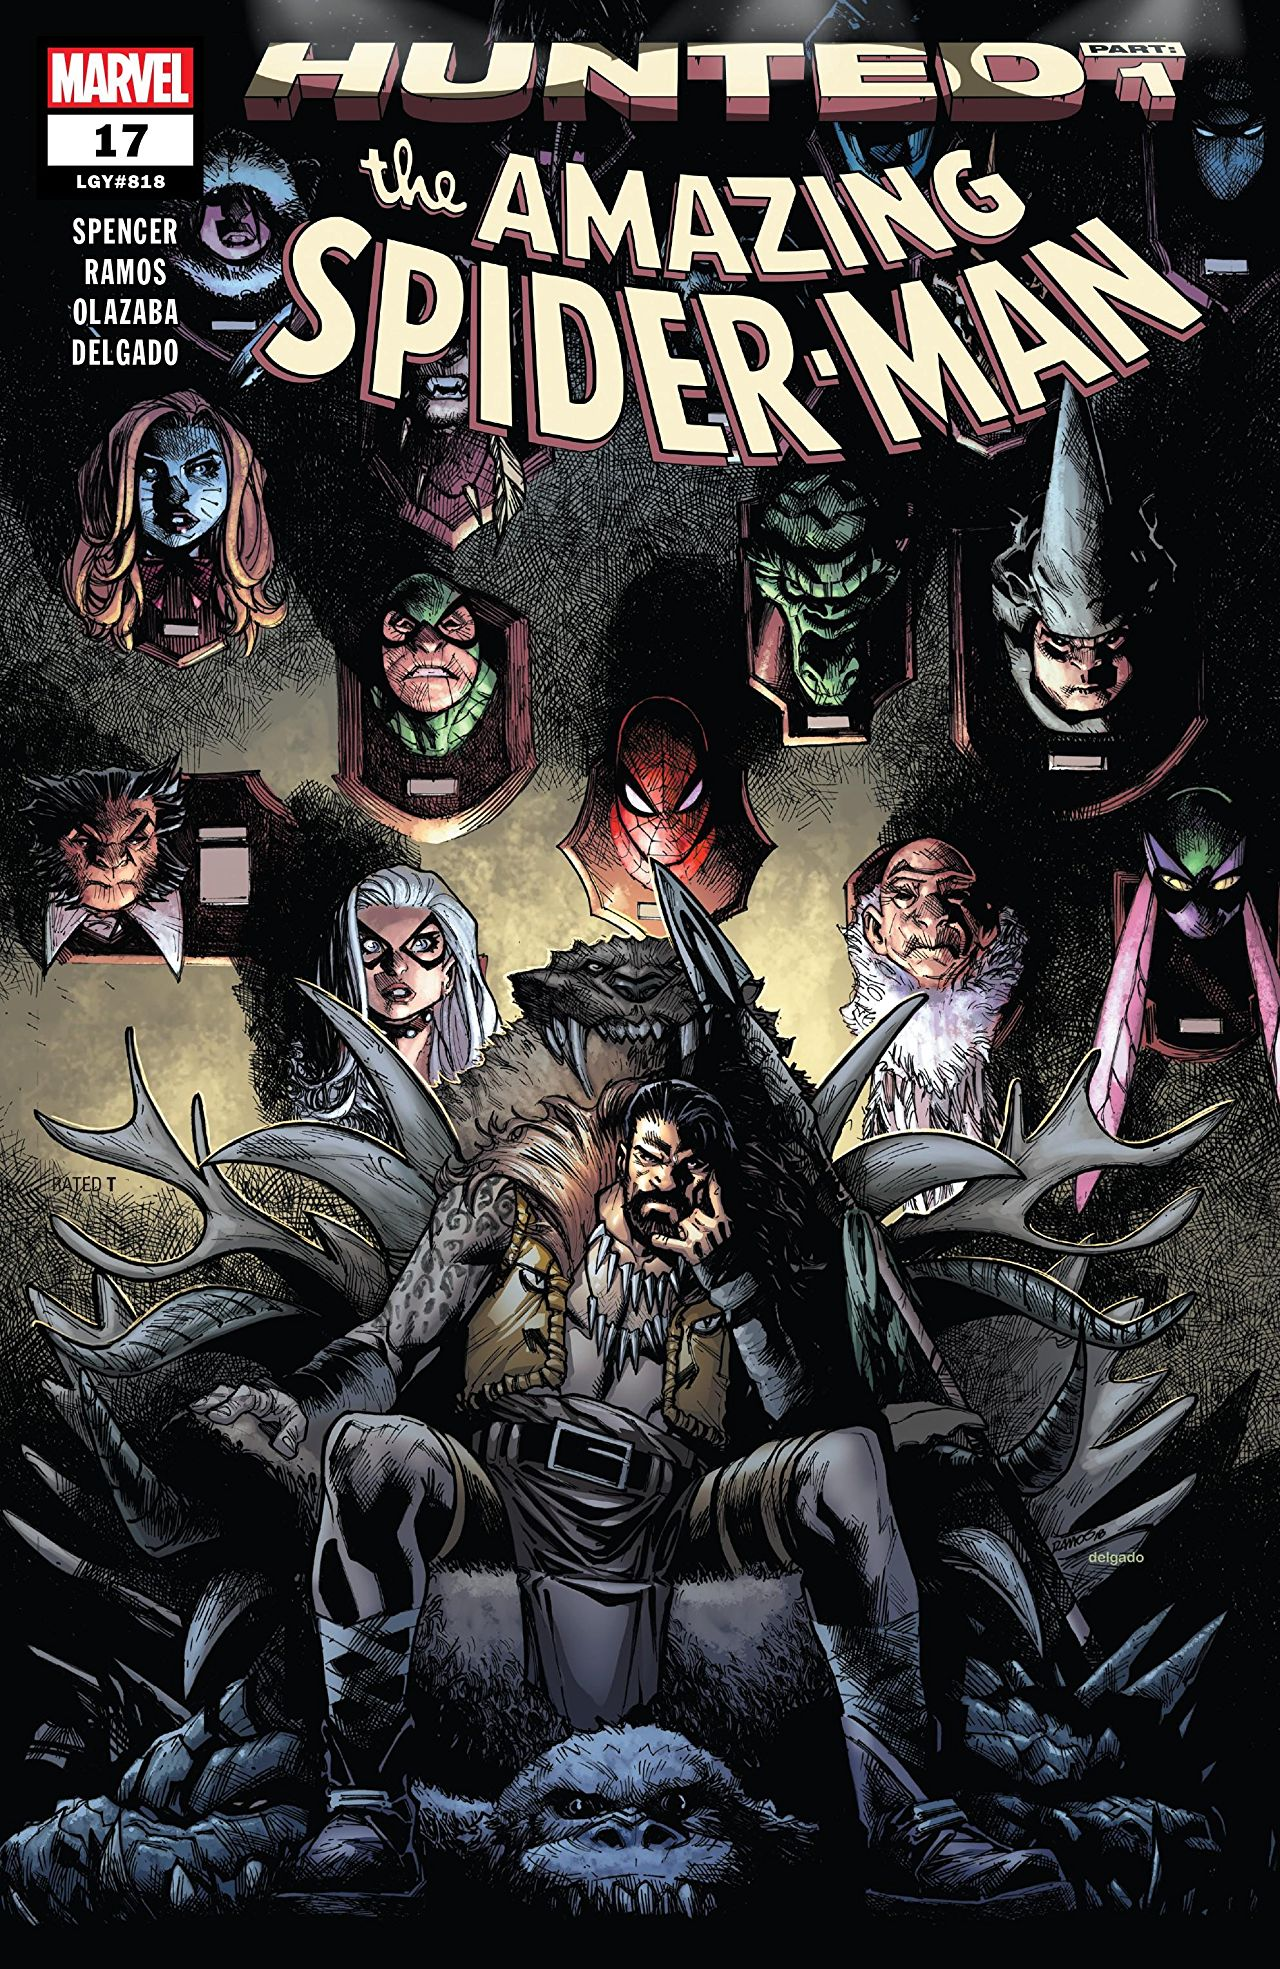 Amazing Spider-Man Vol 5 17